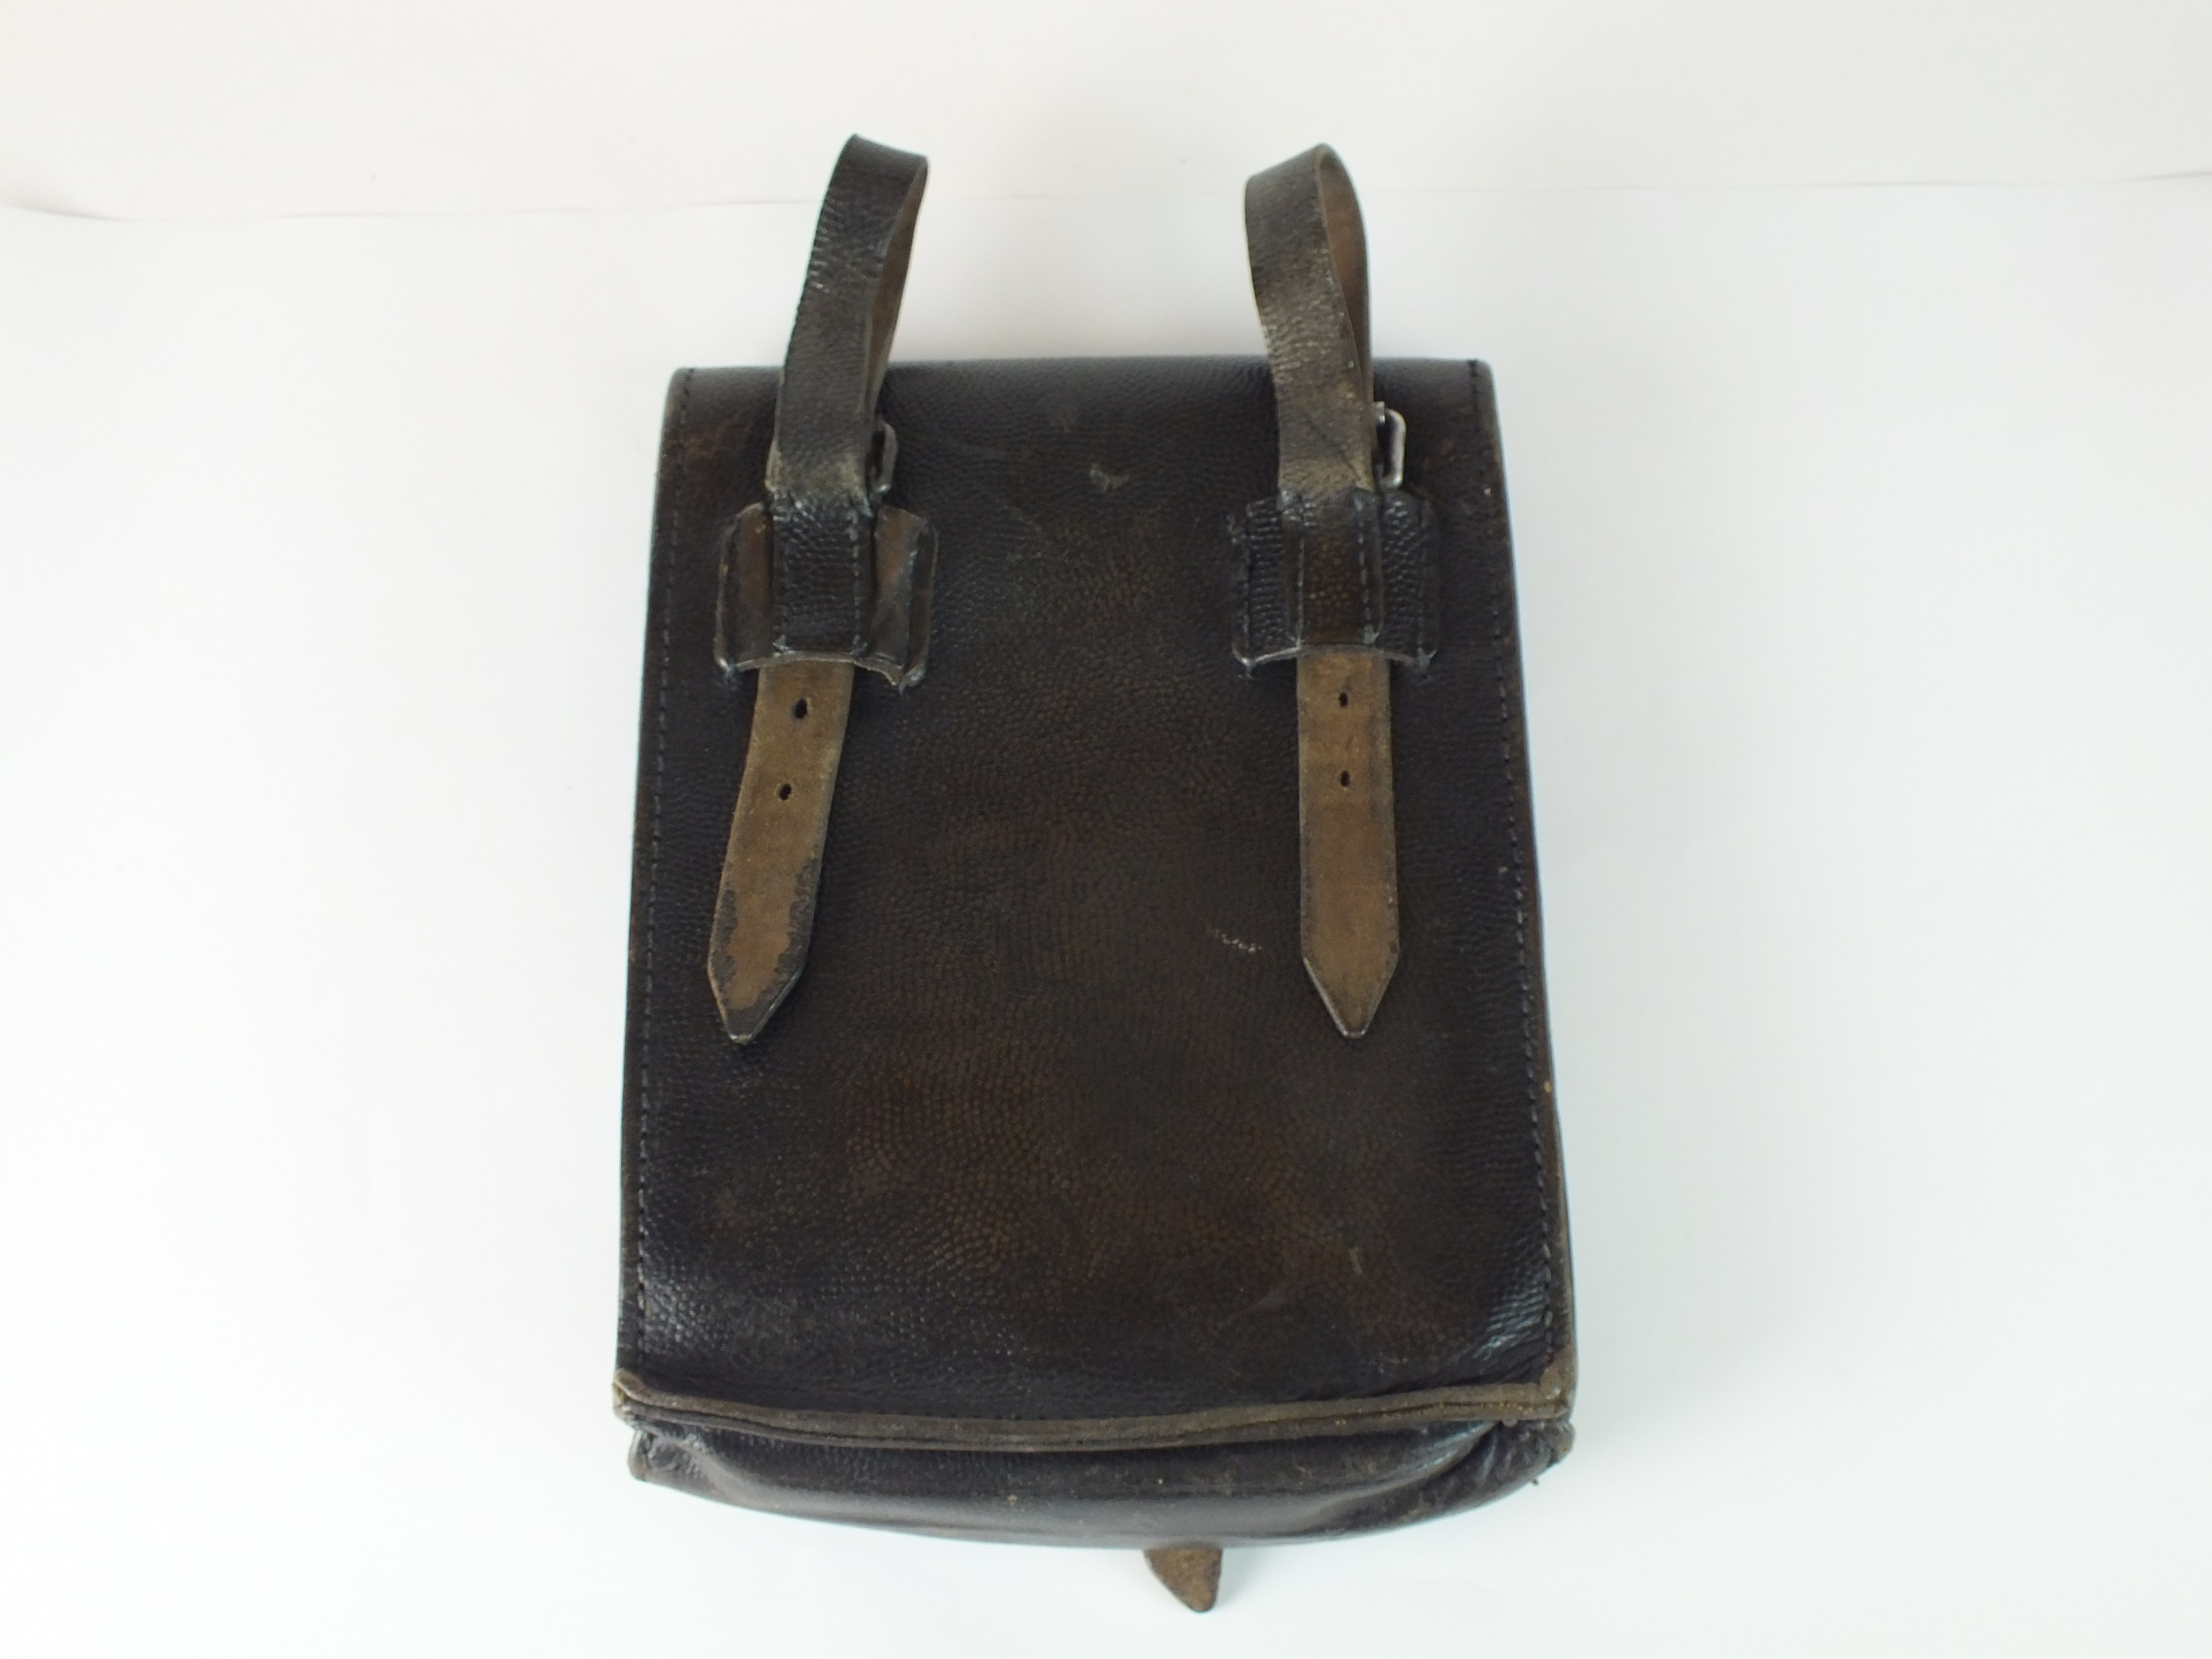 A German M35 black leather map/dispatch case, dated 1942, with twin map compartments and